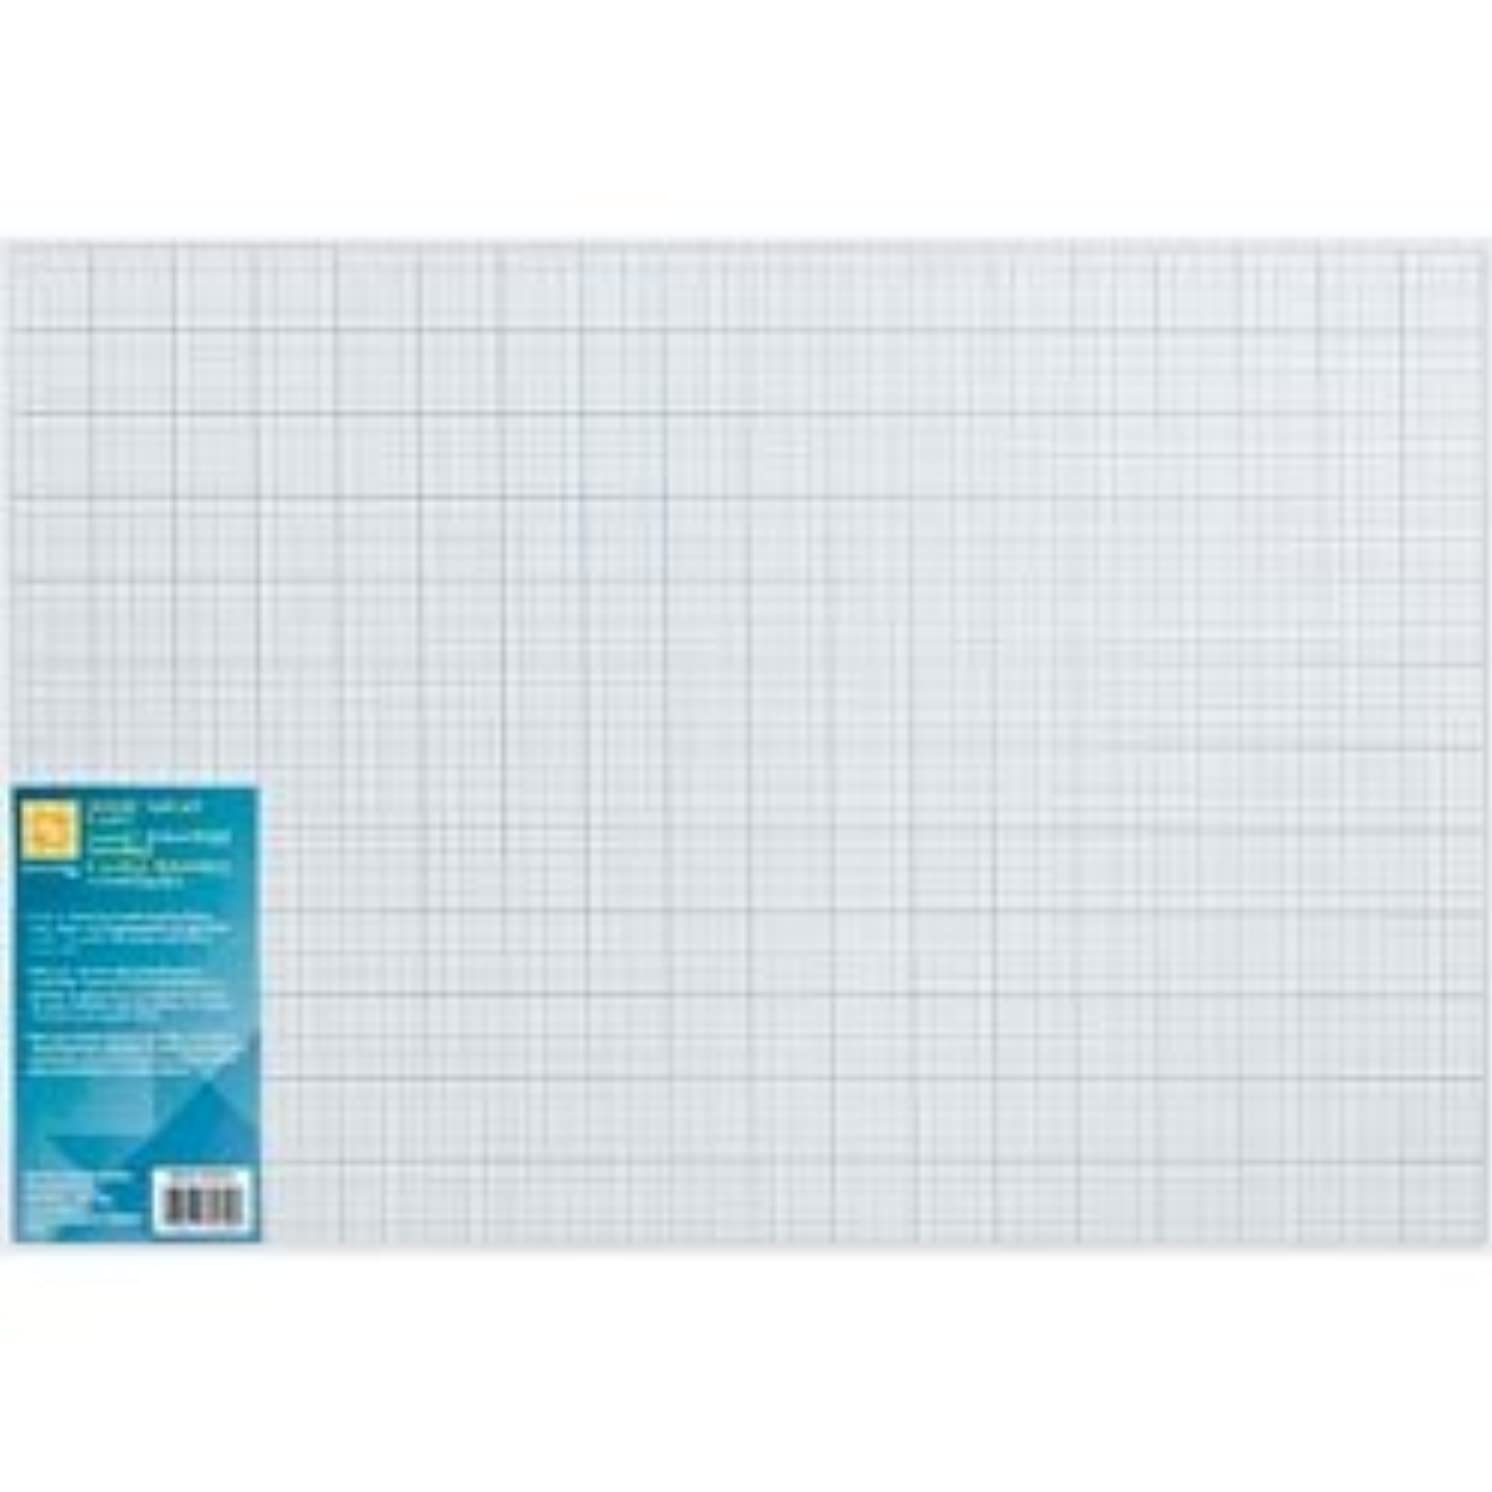 Bulk Buy: Wrights Quilterin.s Gridded Plastic Template 12in. x 18in. 670052 (5-Pack)